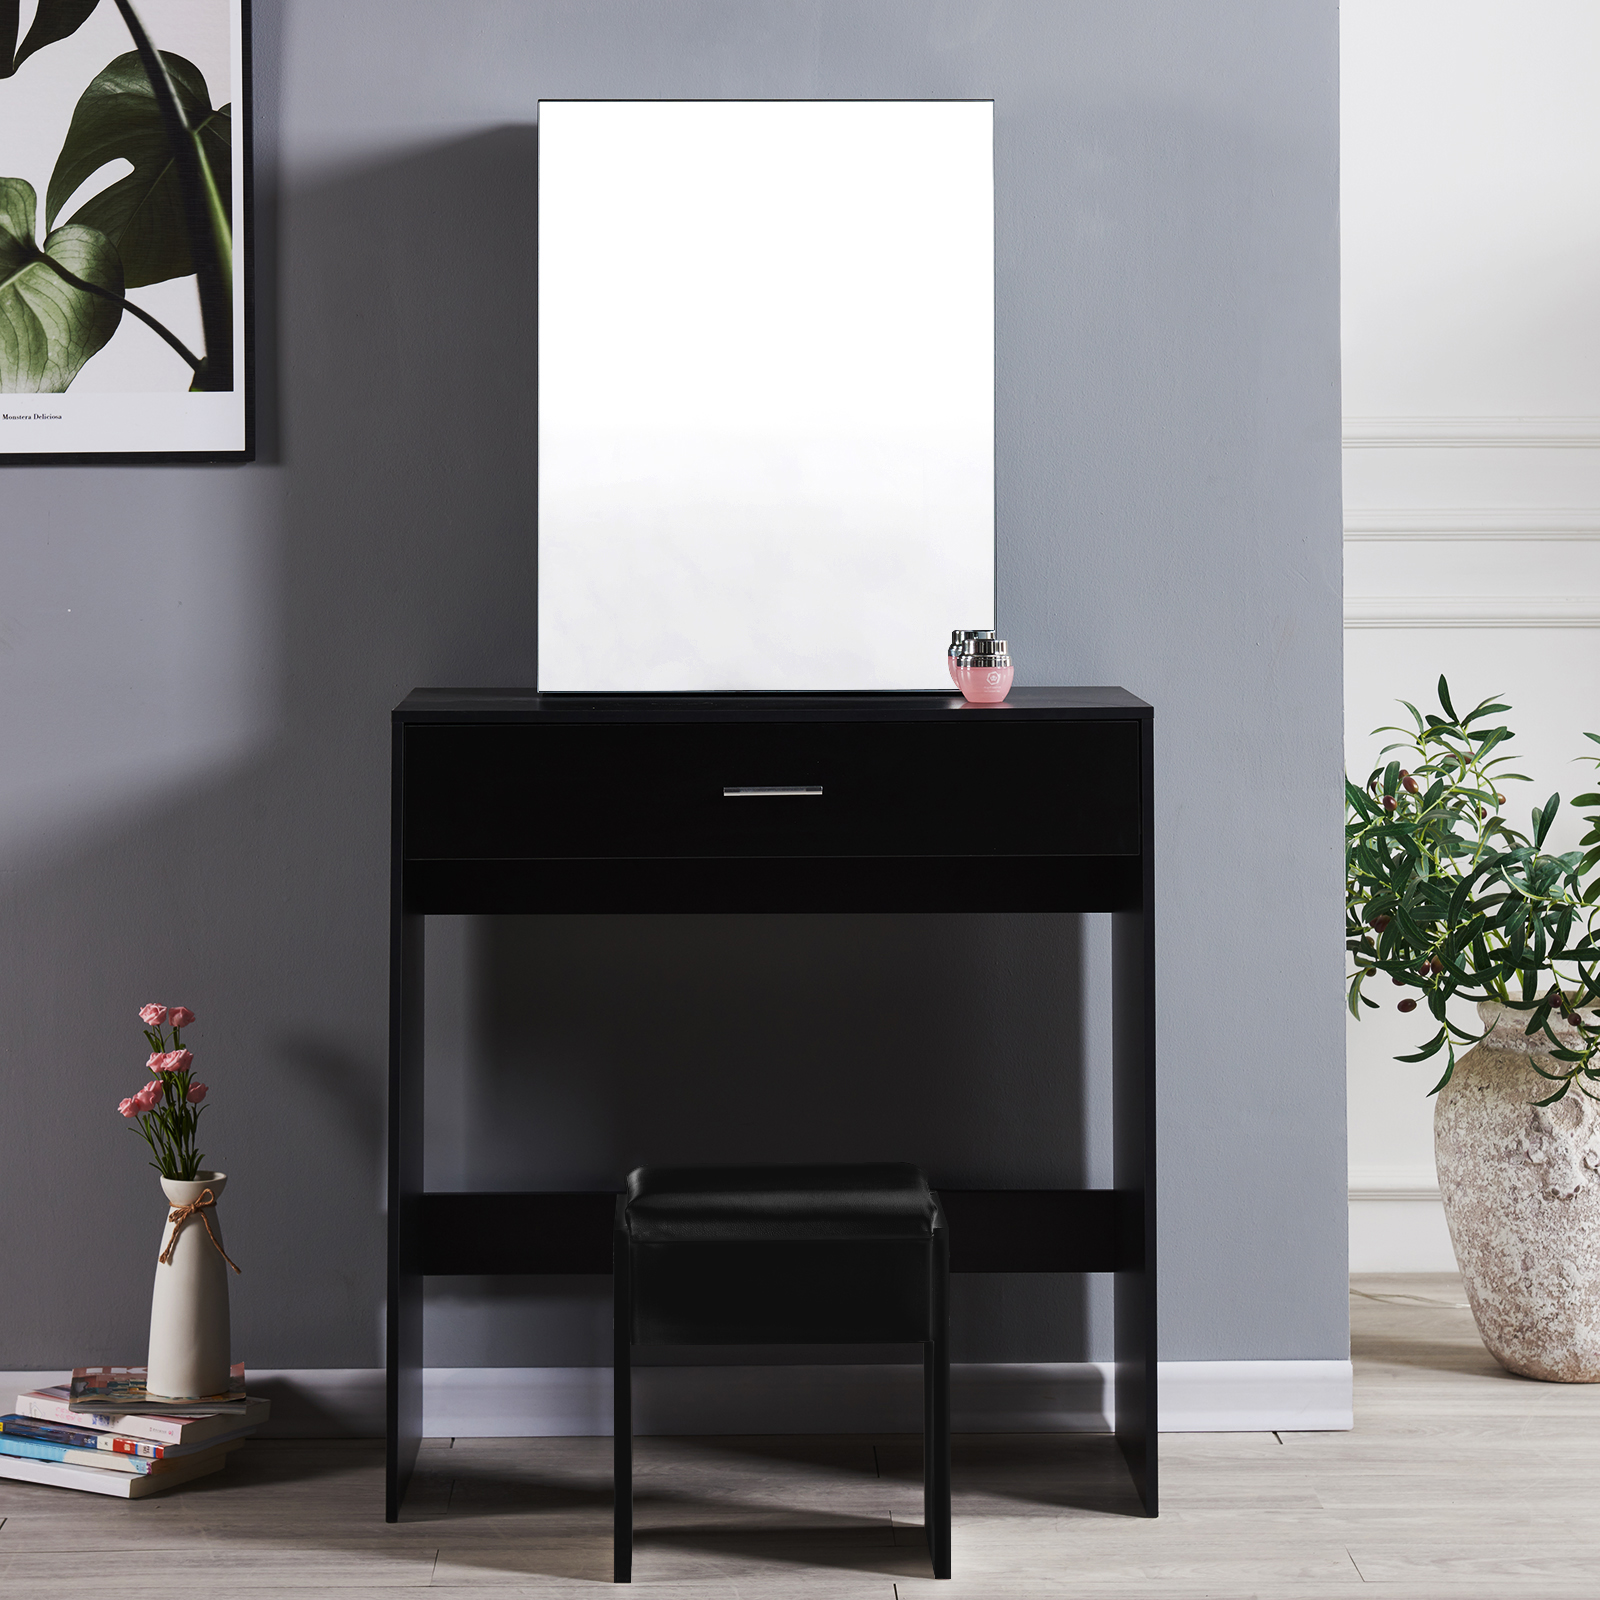 Table Furniture Black Vanity Makeup Jewelry Dressing Table With Sliding Mirror Drawer Bedroom Home Furniture Diy 5050 Pk